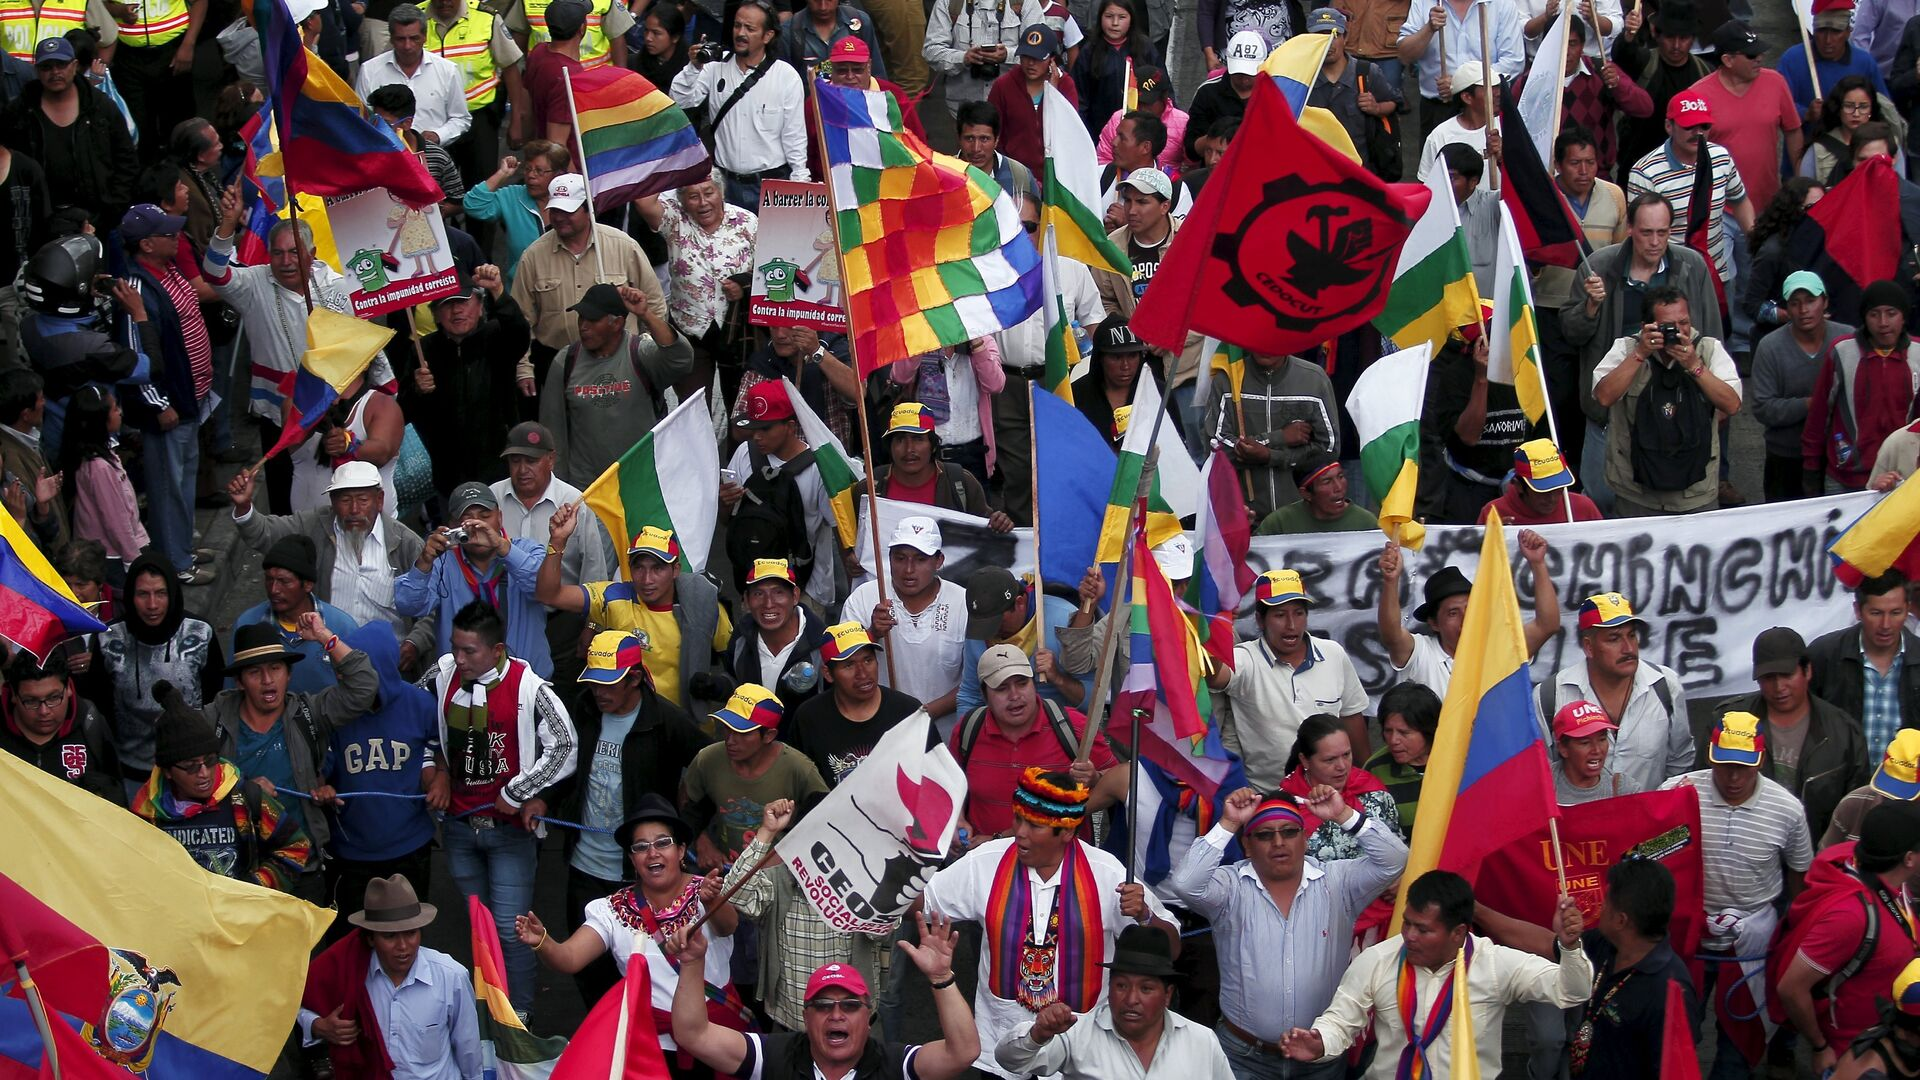 Protesters carry flags and banners while marching in Quito, Ecuador, August 12, 2015 - Sputnik Mundo, 1920, 13.10.2021